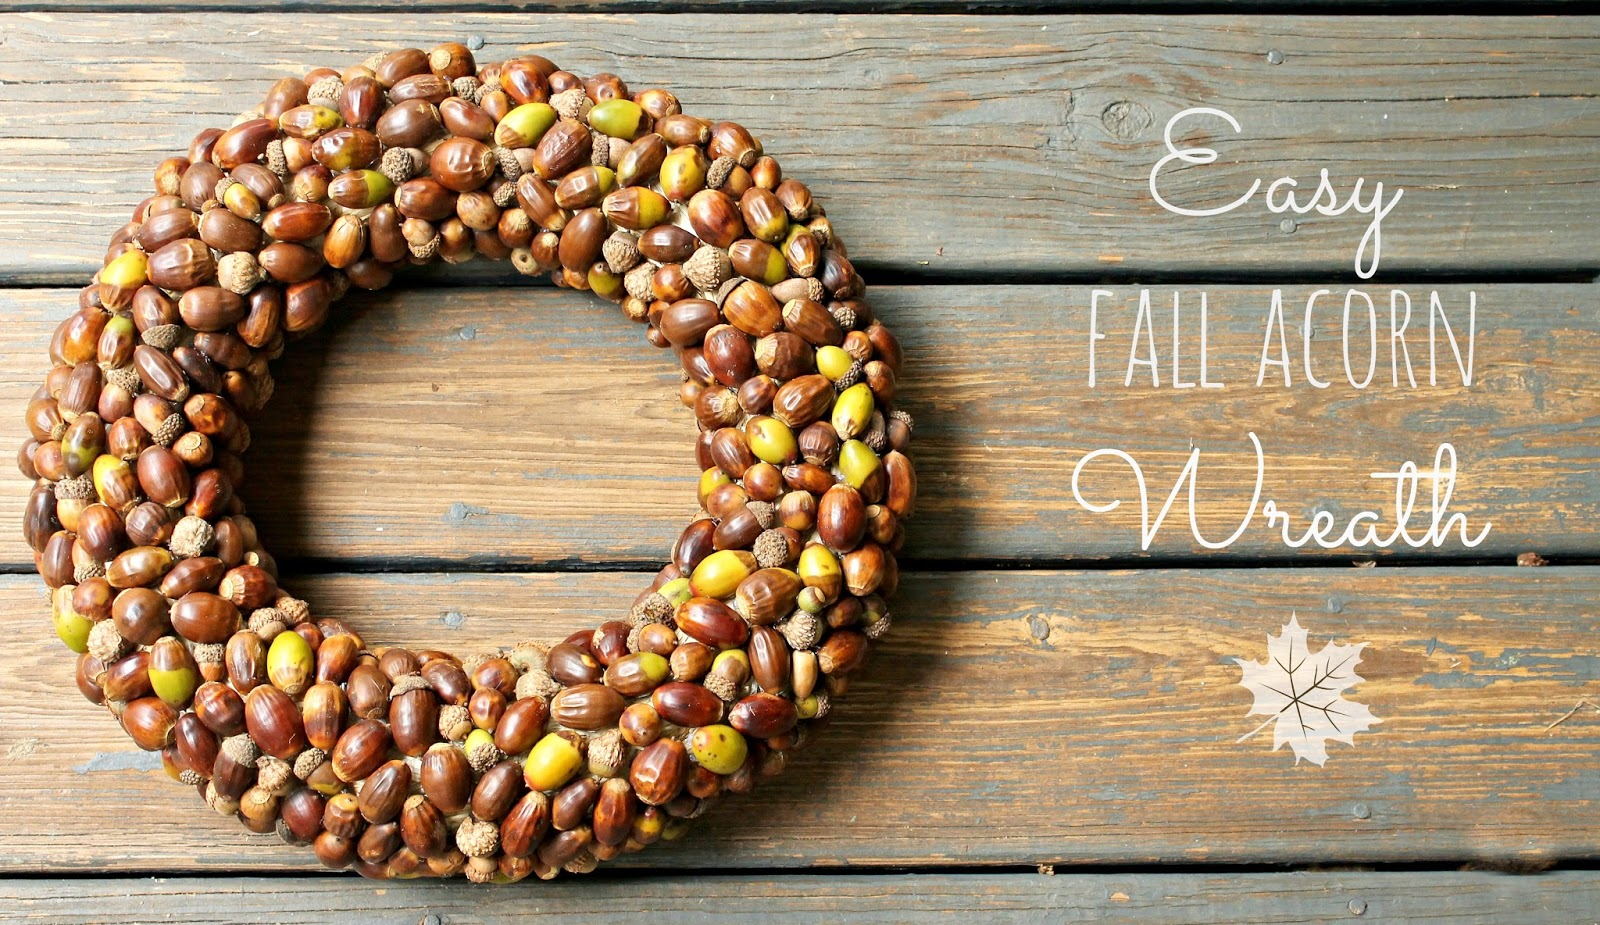 the little farm diary: DIY: Easy Fall Acorn Wreath